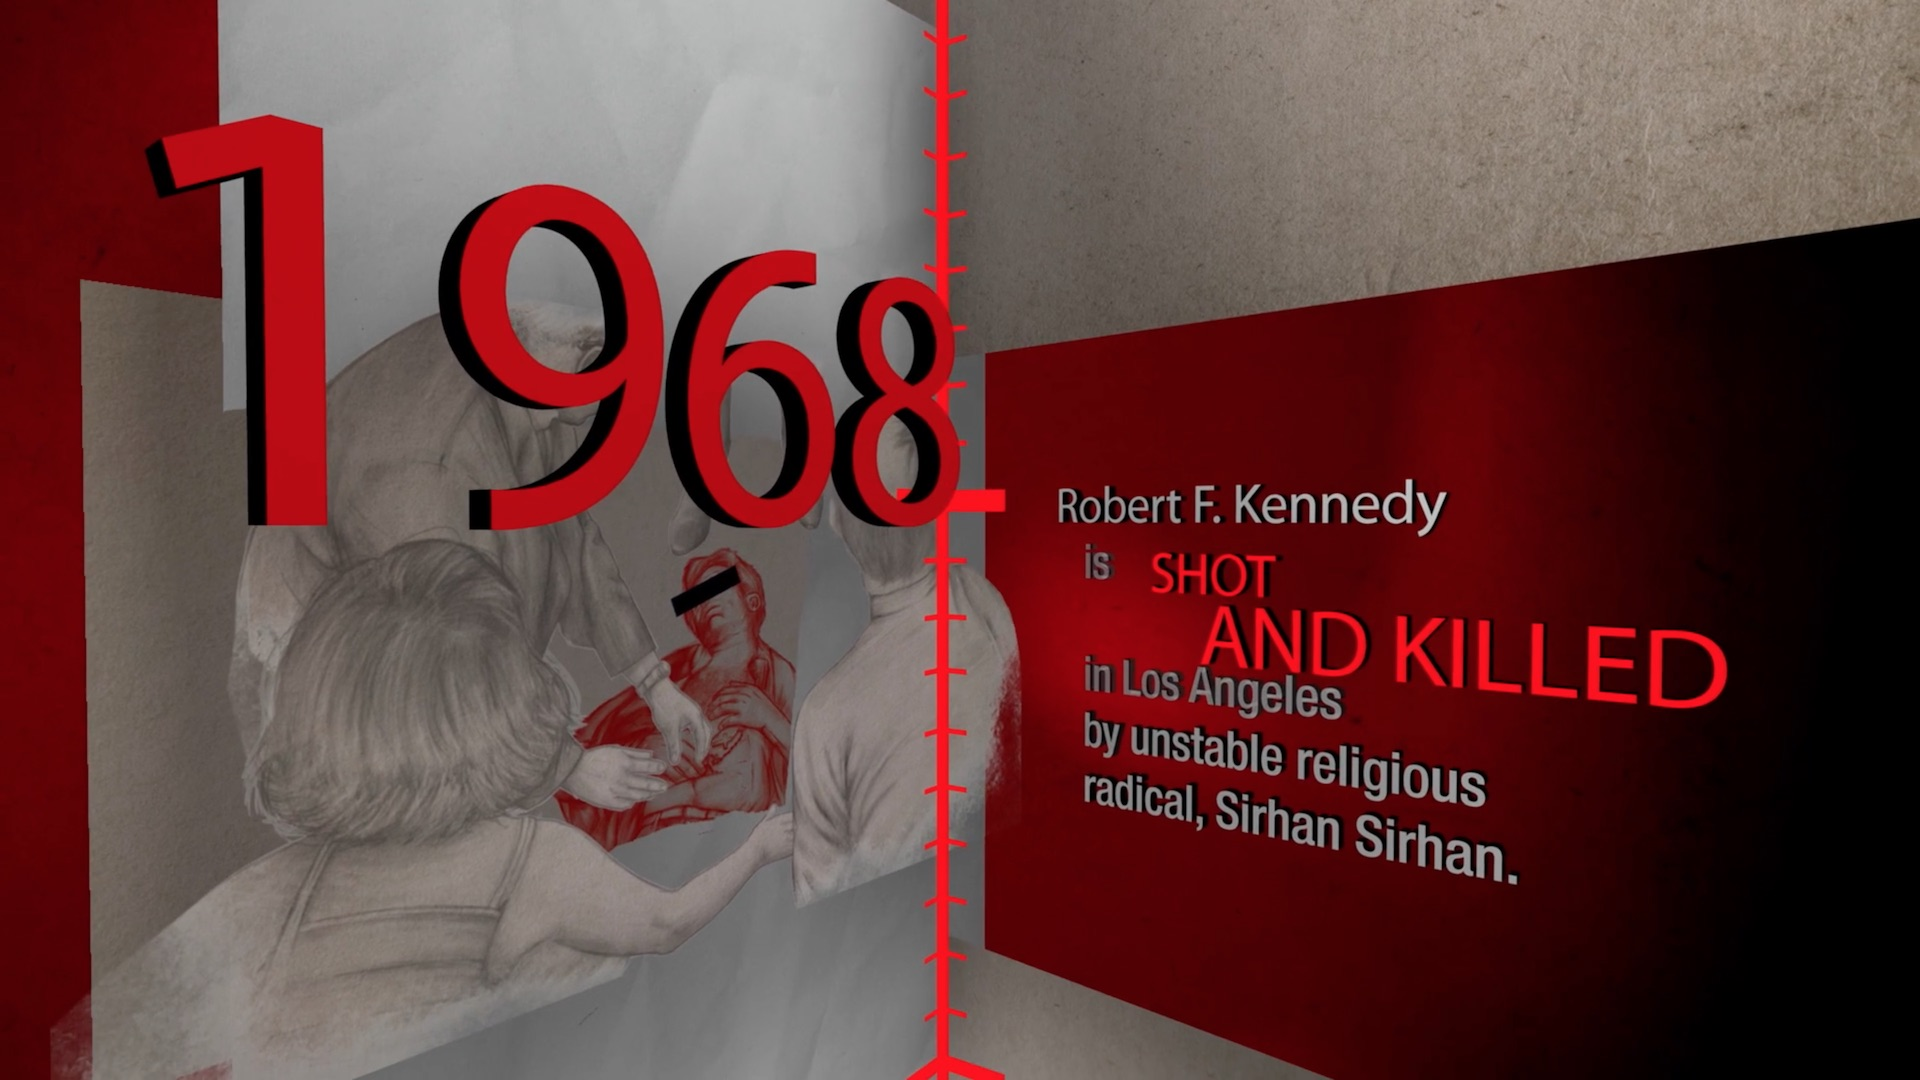 James Patterson's The House of Kennedy - Timeline of Tragedy book promo artwork